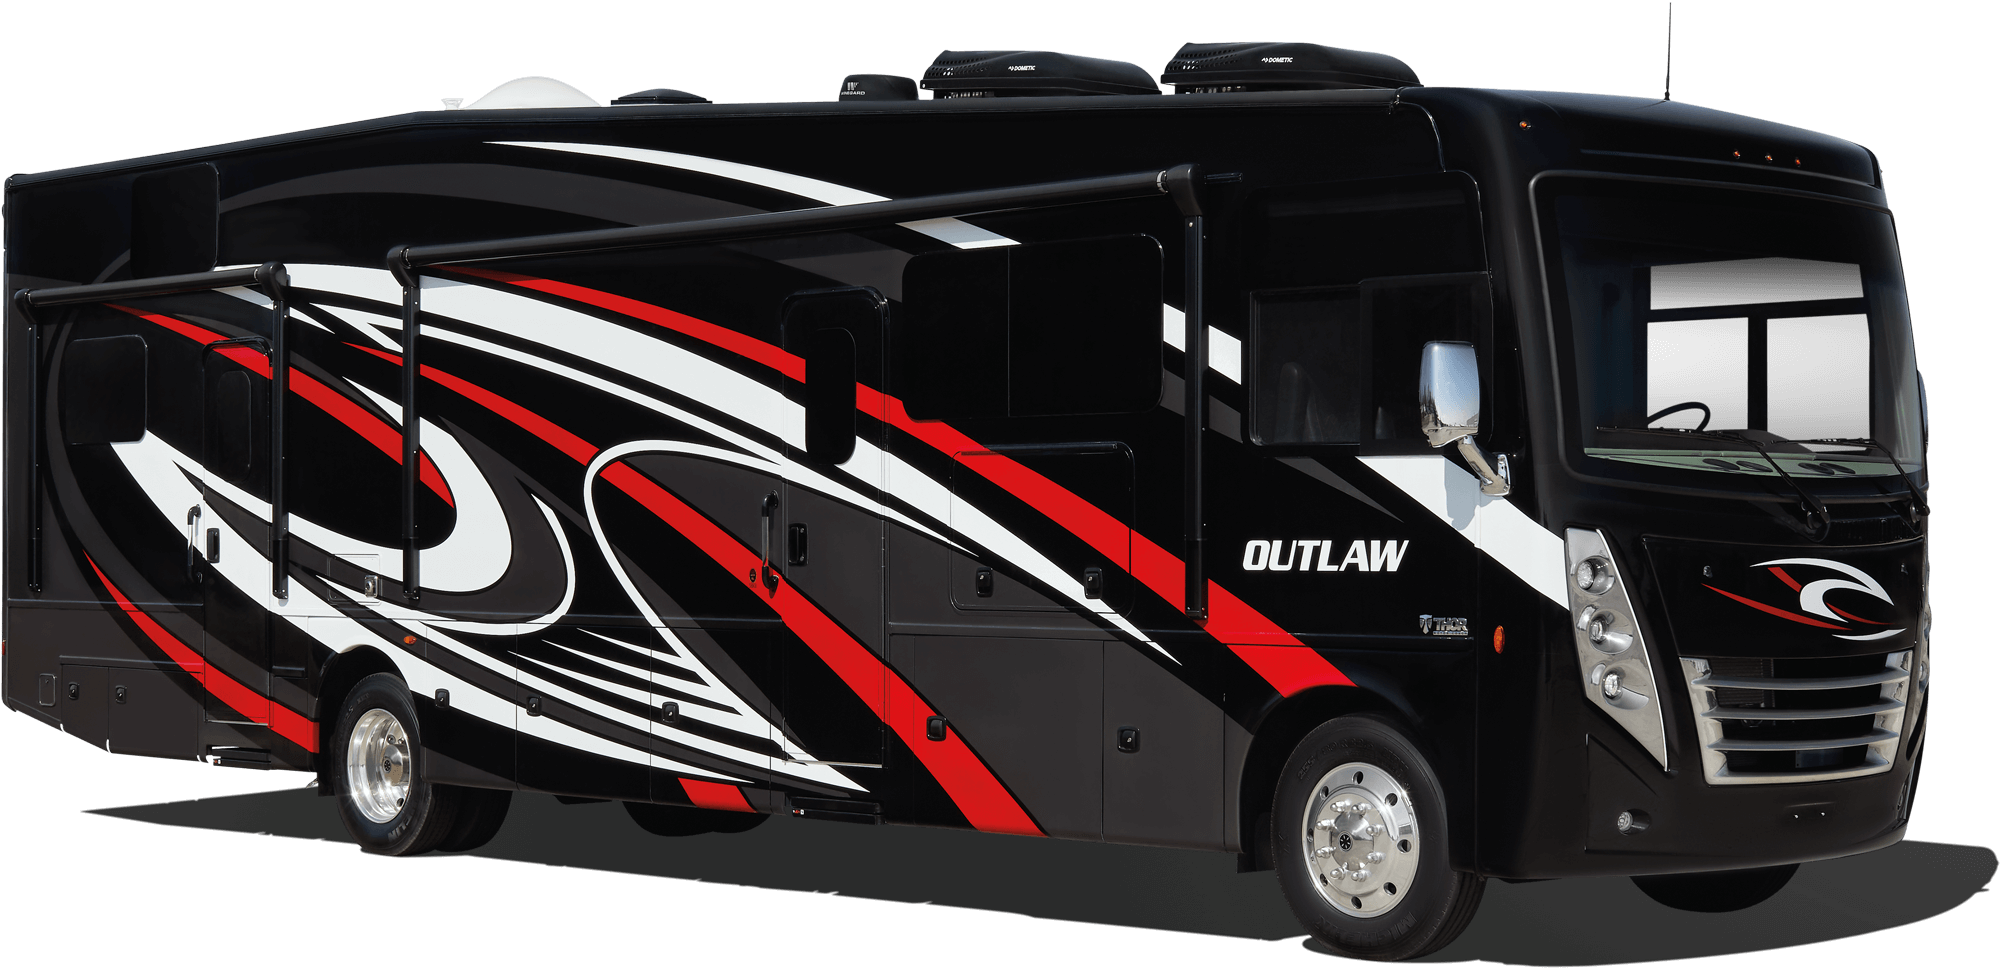 Outlaw Class A Toy Hauler Motorhomes Thor Motor Coach